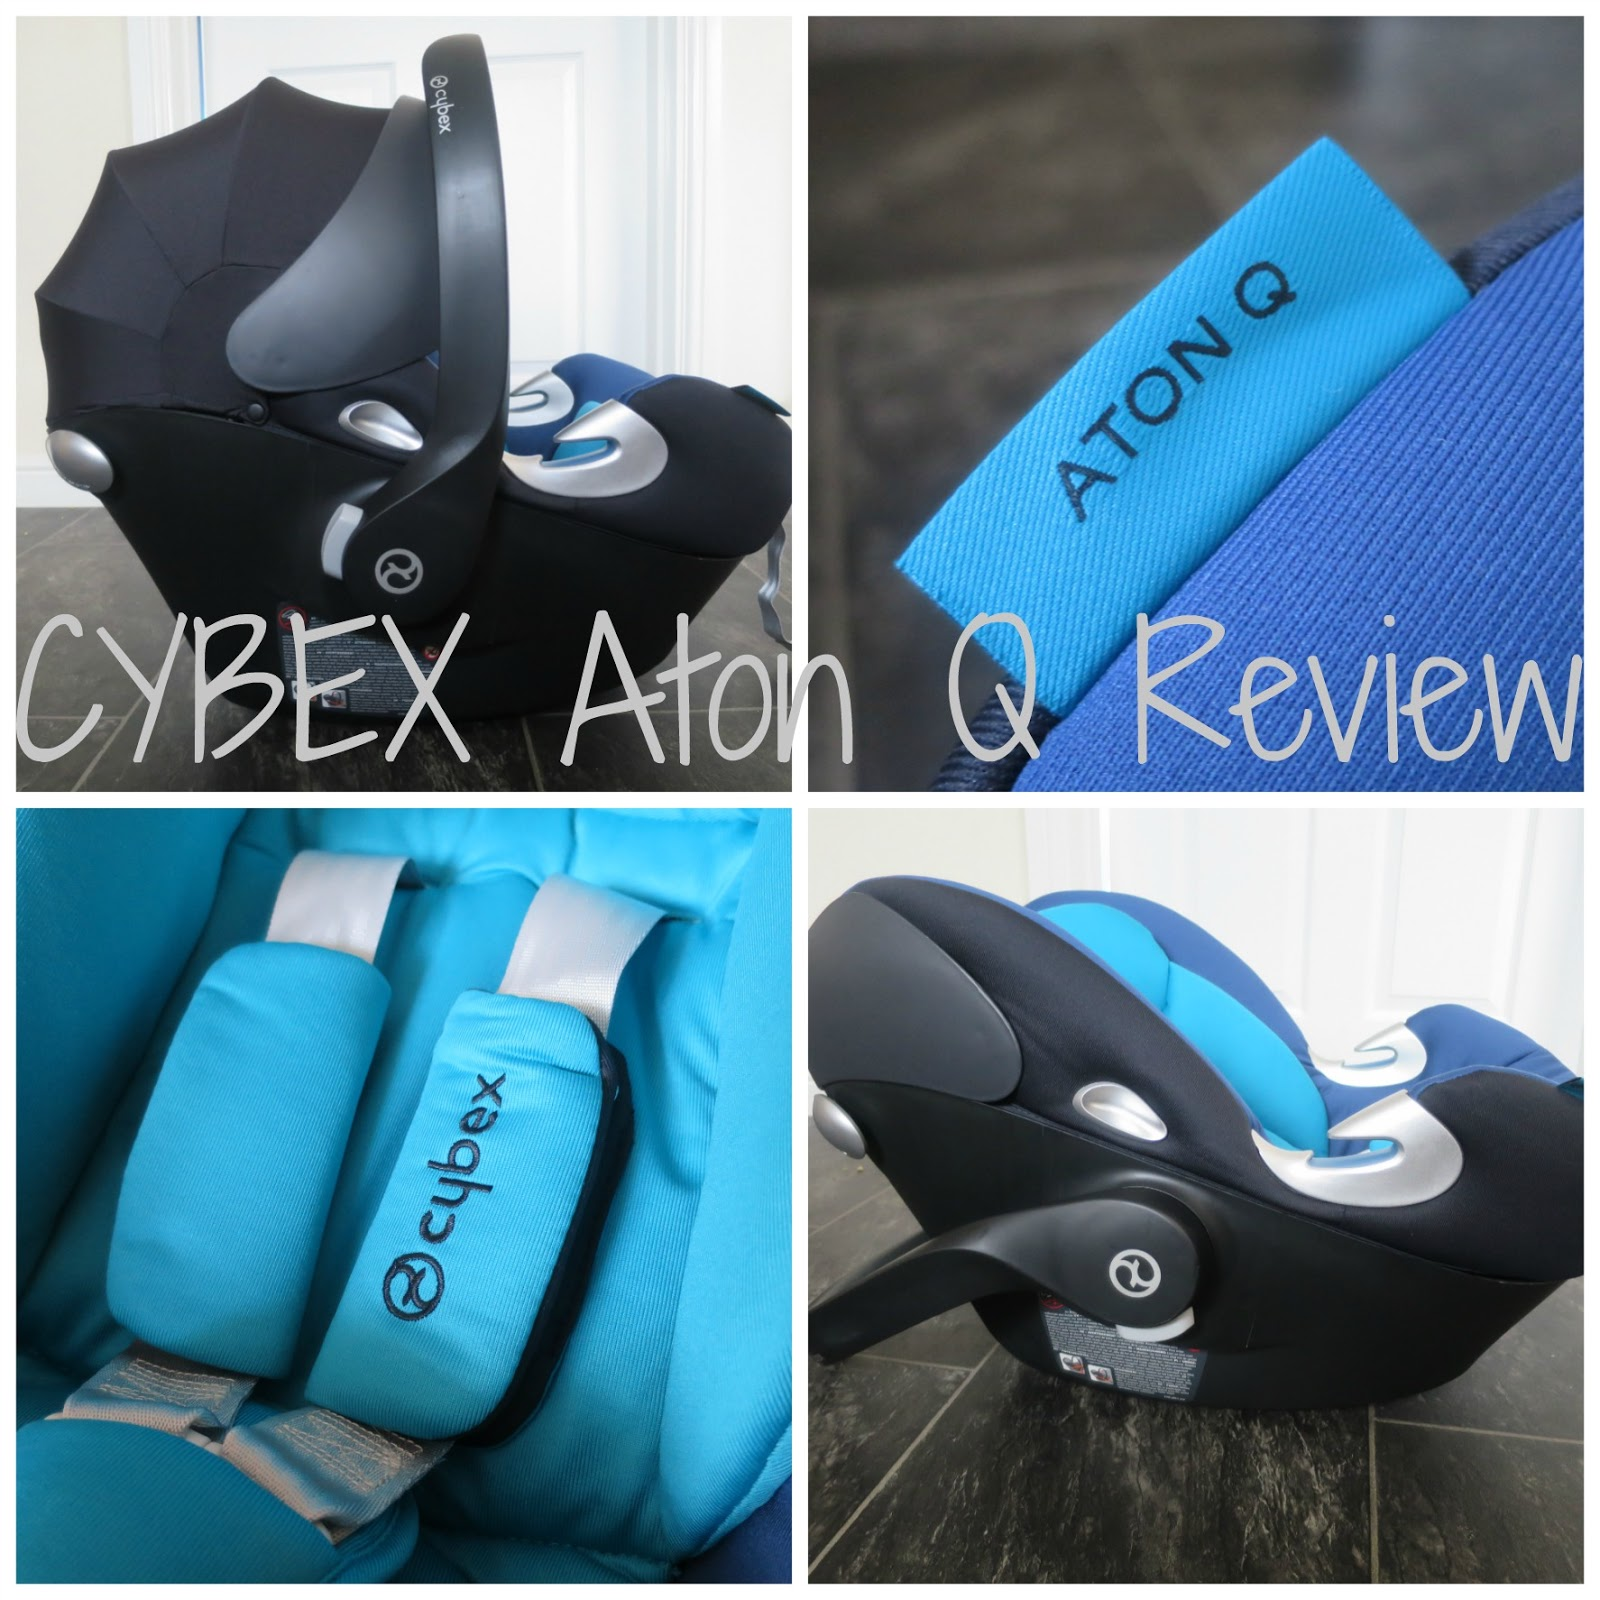 review cybex aton q car seat nicola johnston. Black Bedroom Furniture Sets. Home Design Ideas